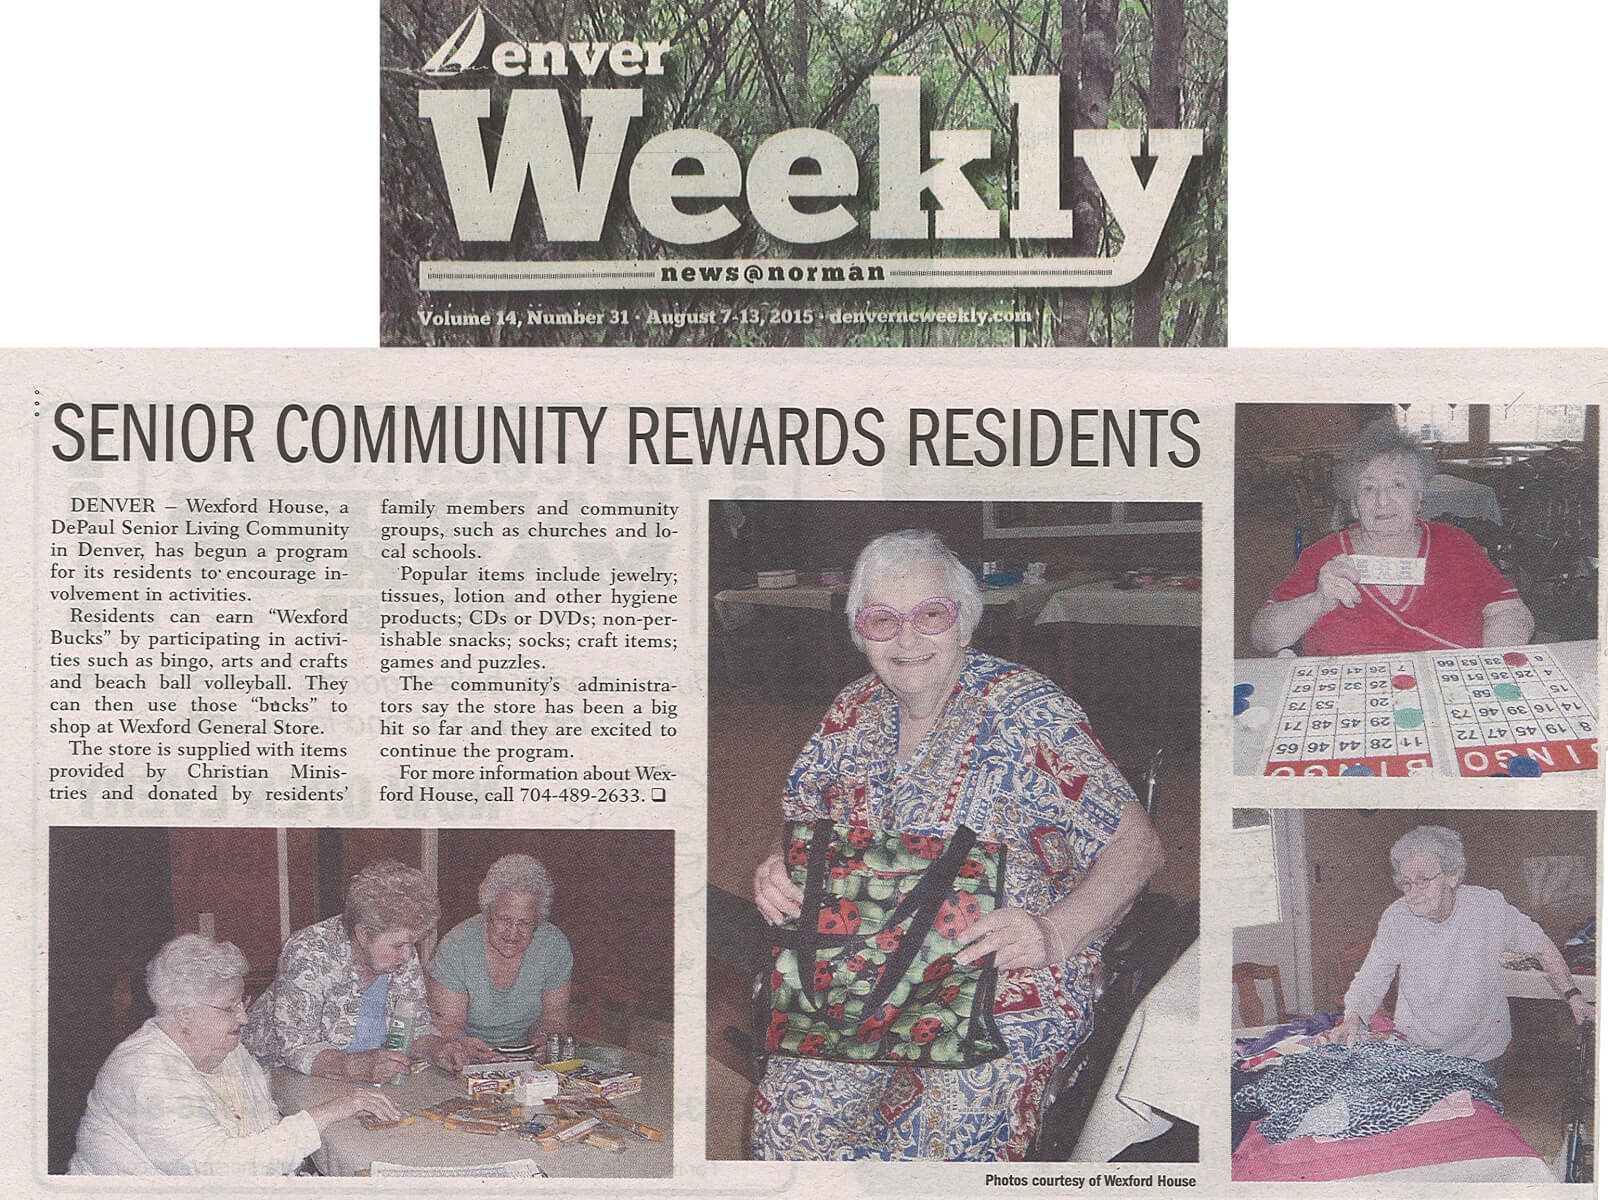 Wexford House Store story in the Denver Weekly September 7-13, 2015